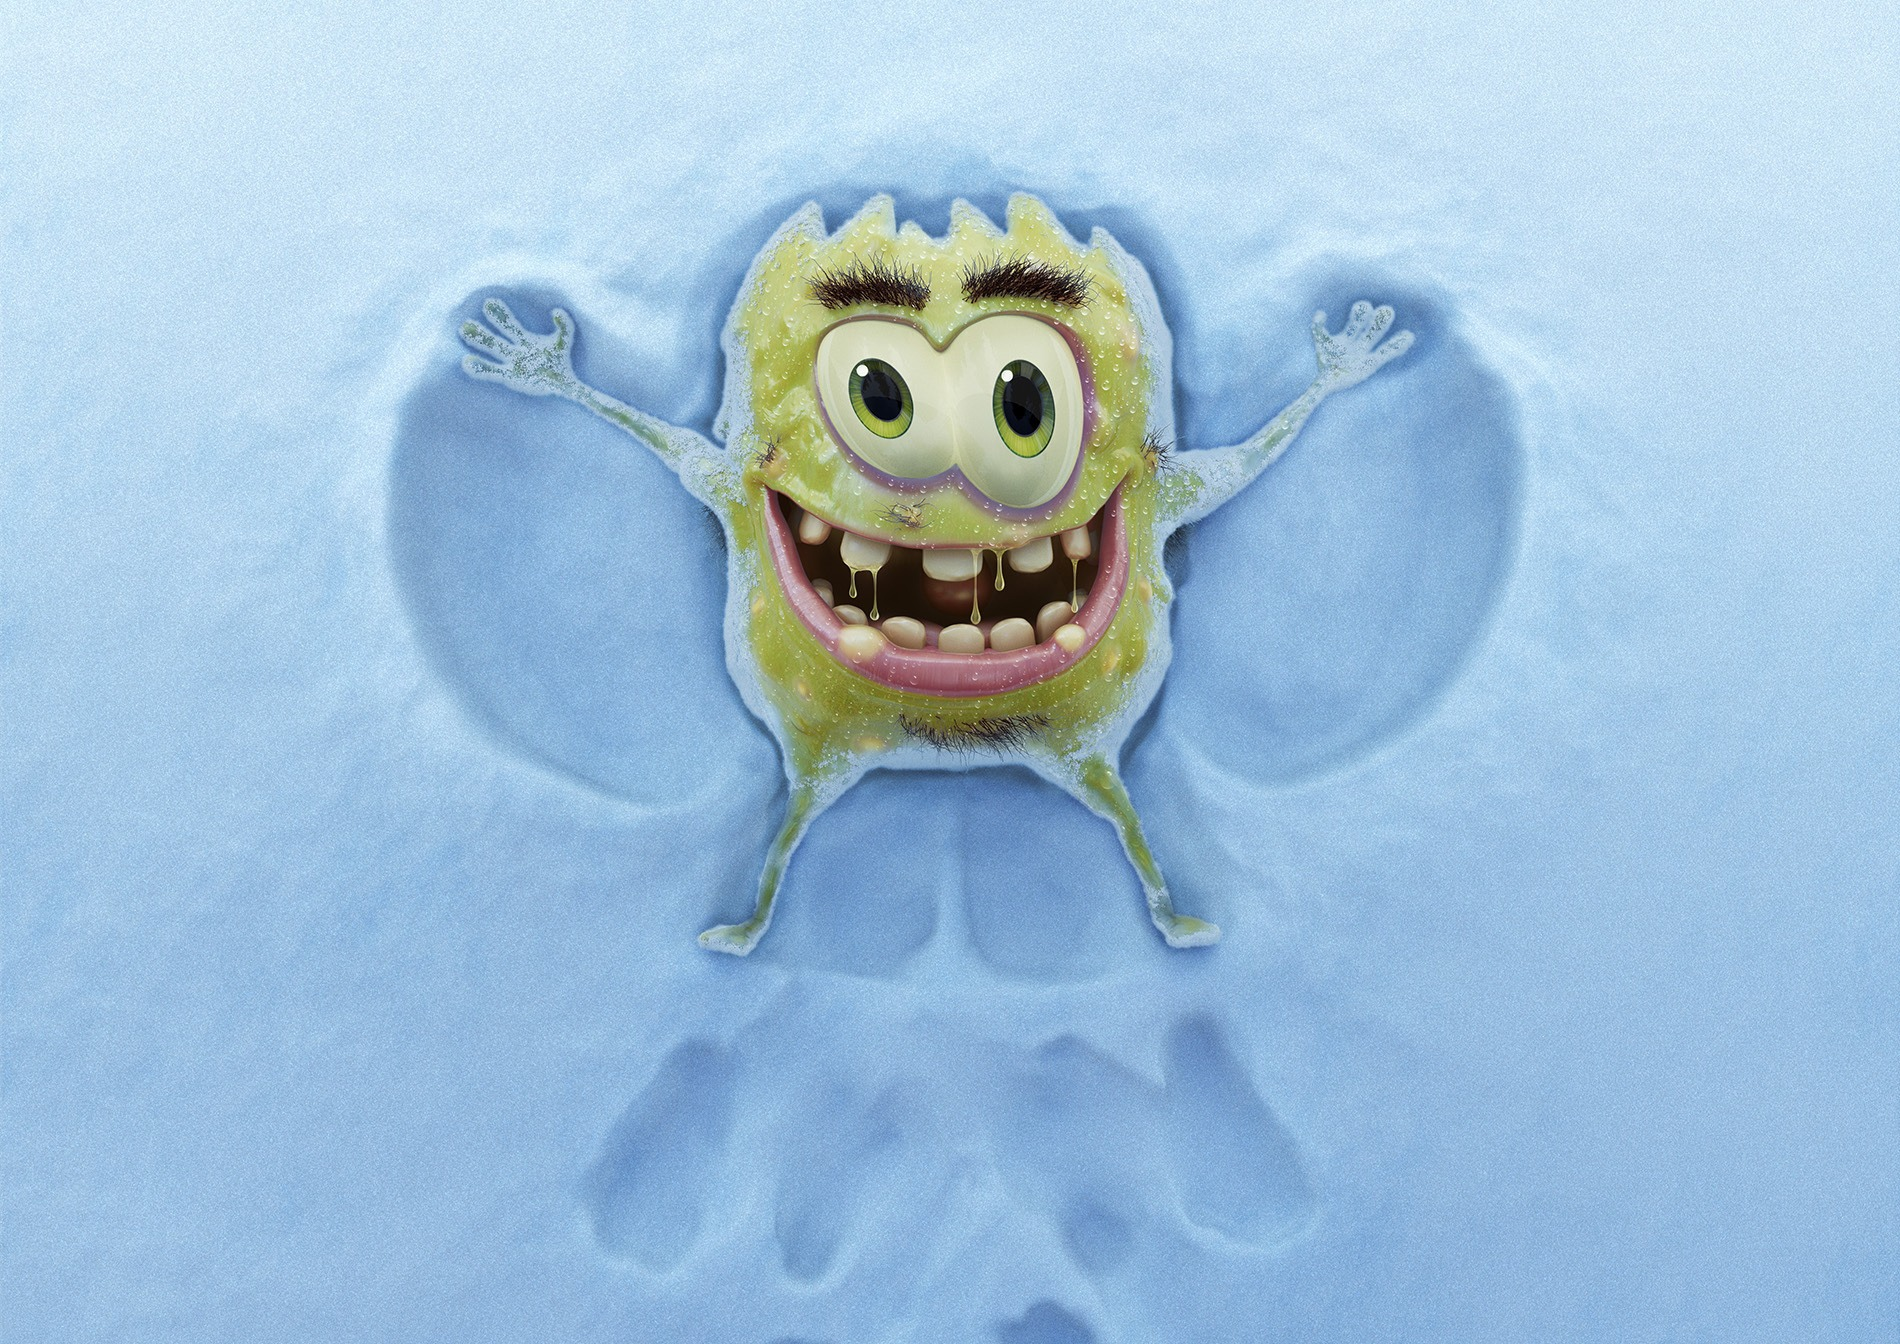 cgi artwork of a yellow germ character making a snow angel